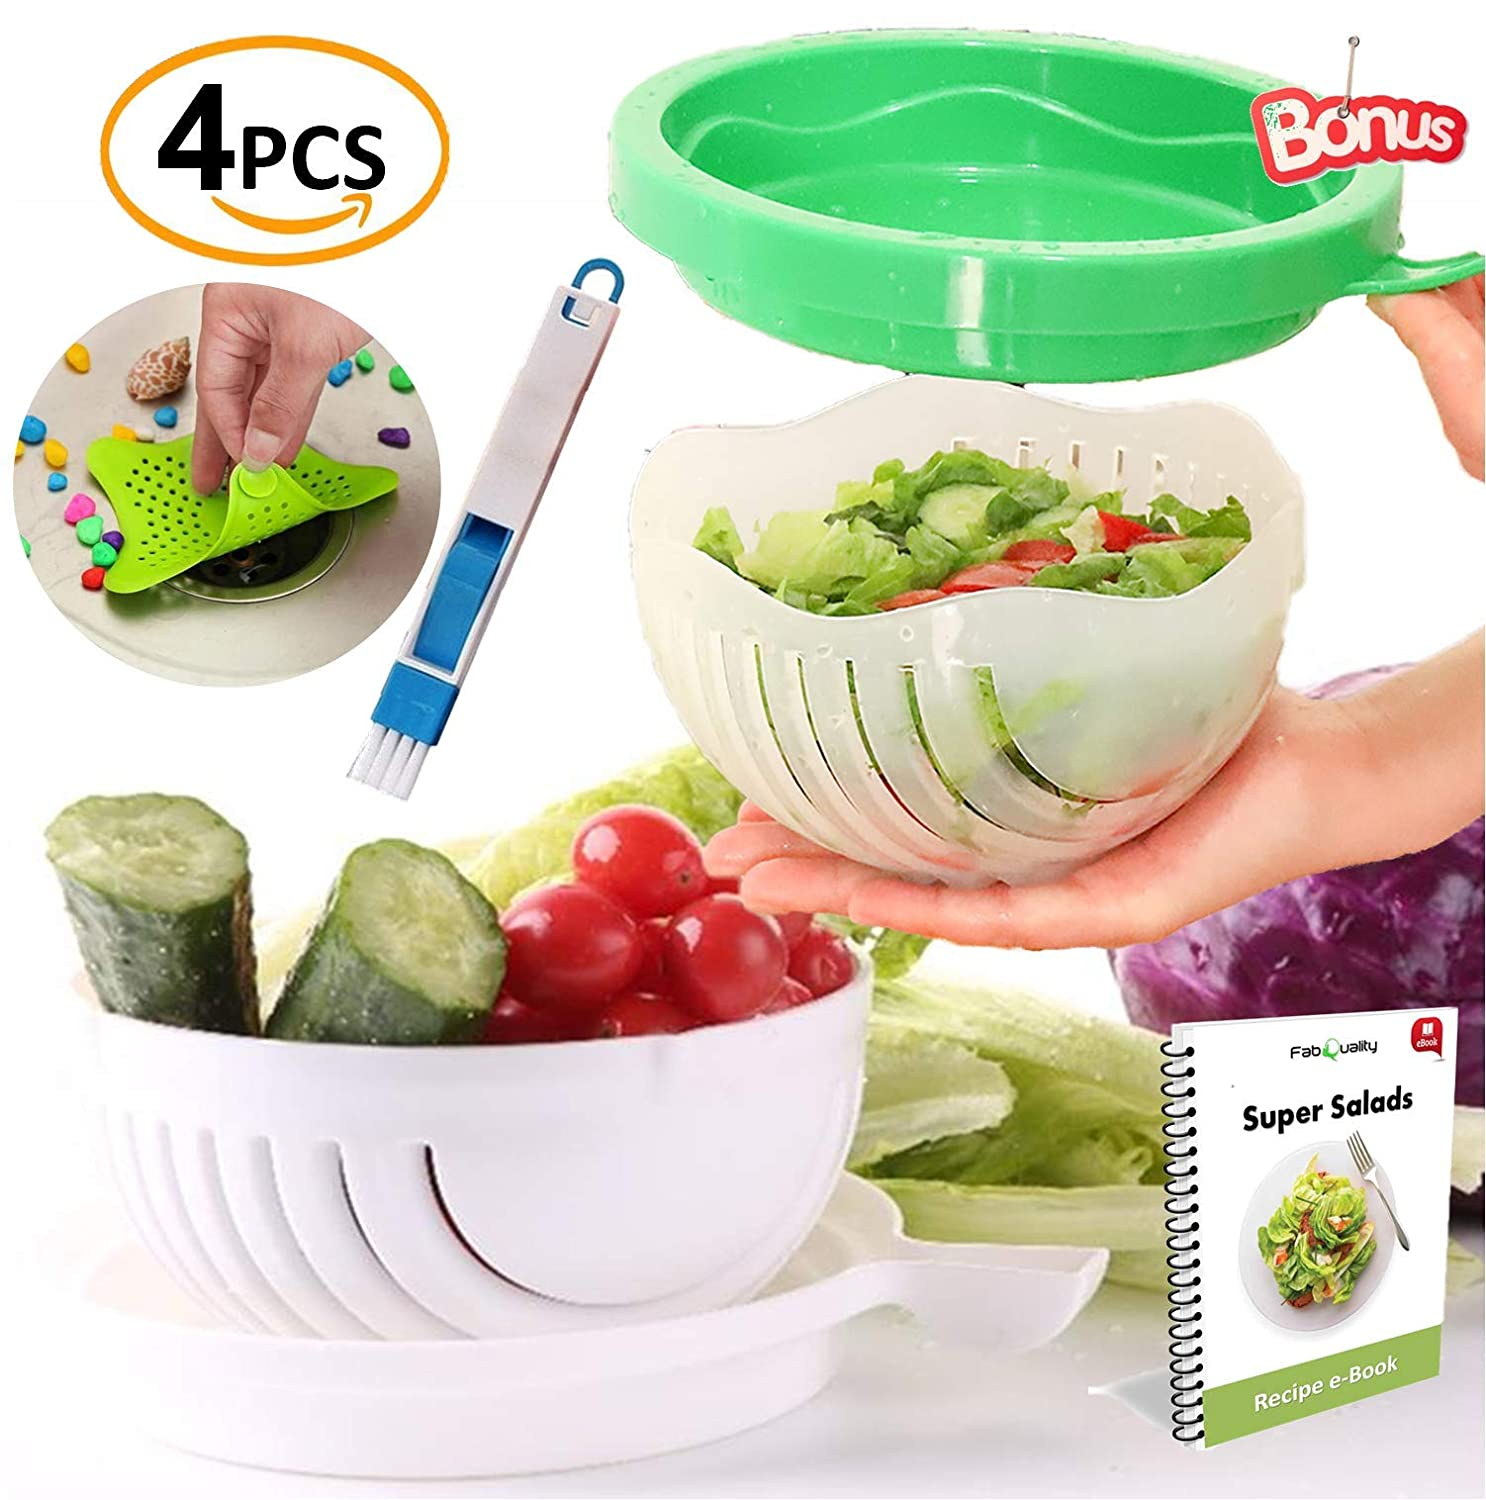 SPECIAL OFFER Premium 2x Salad Cutter Bowl, Plus 2x BONUS + eBook! - Vegetable Cutter Bowl - Make Your Salad in 60 Seconds. Fast Fresh Salad Slicer Salad Chopper FabQuality SYNCHKG119337